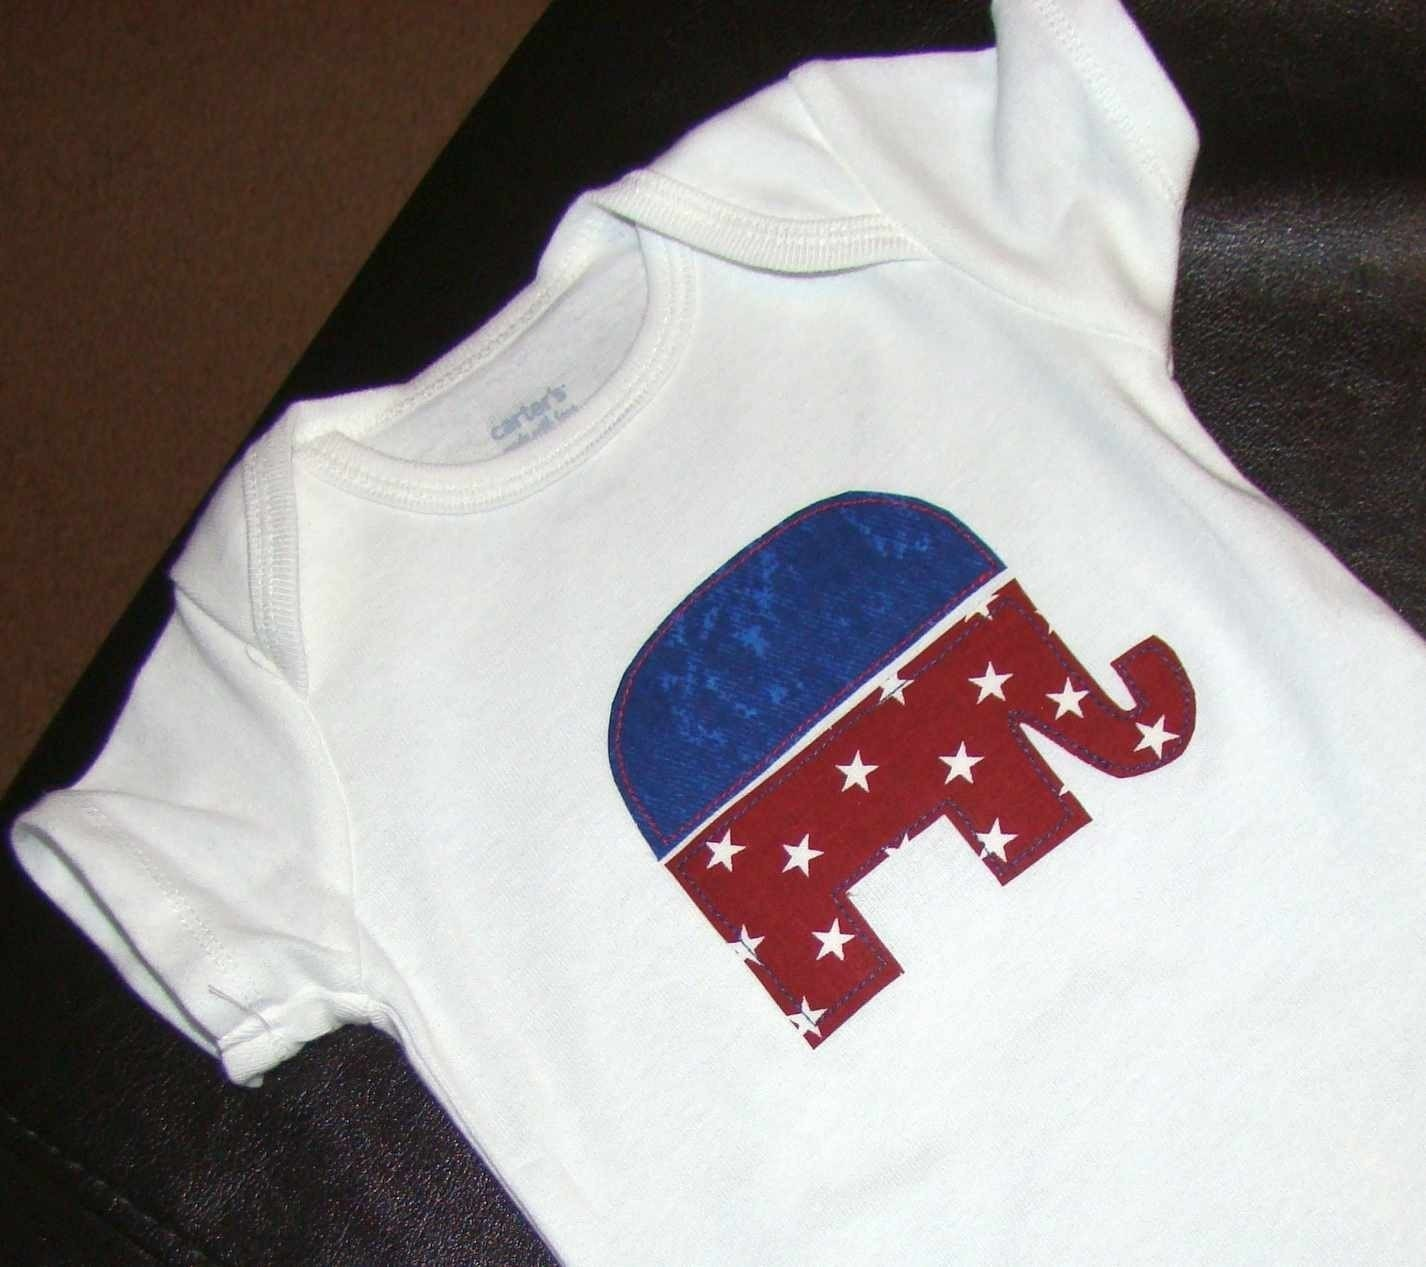 Red, White, and Blue Republican Elephant Onesie/Tee